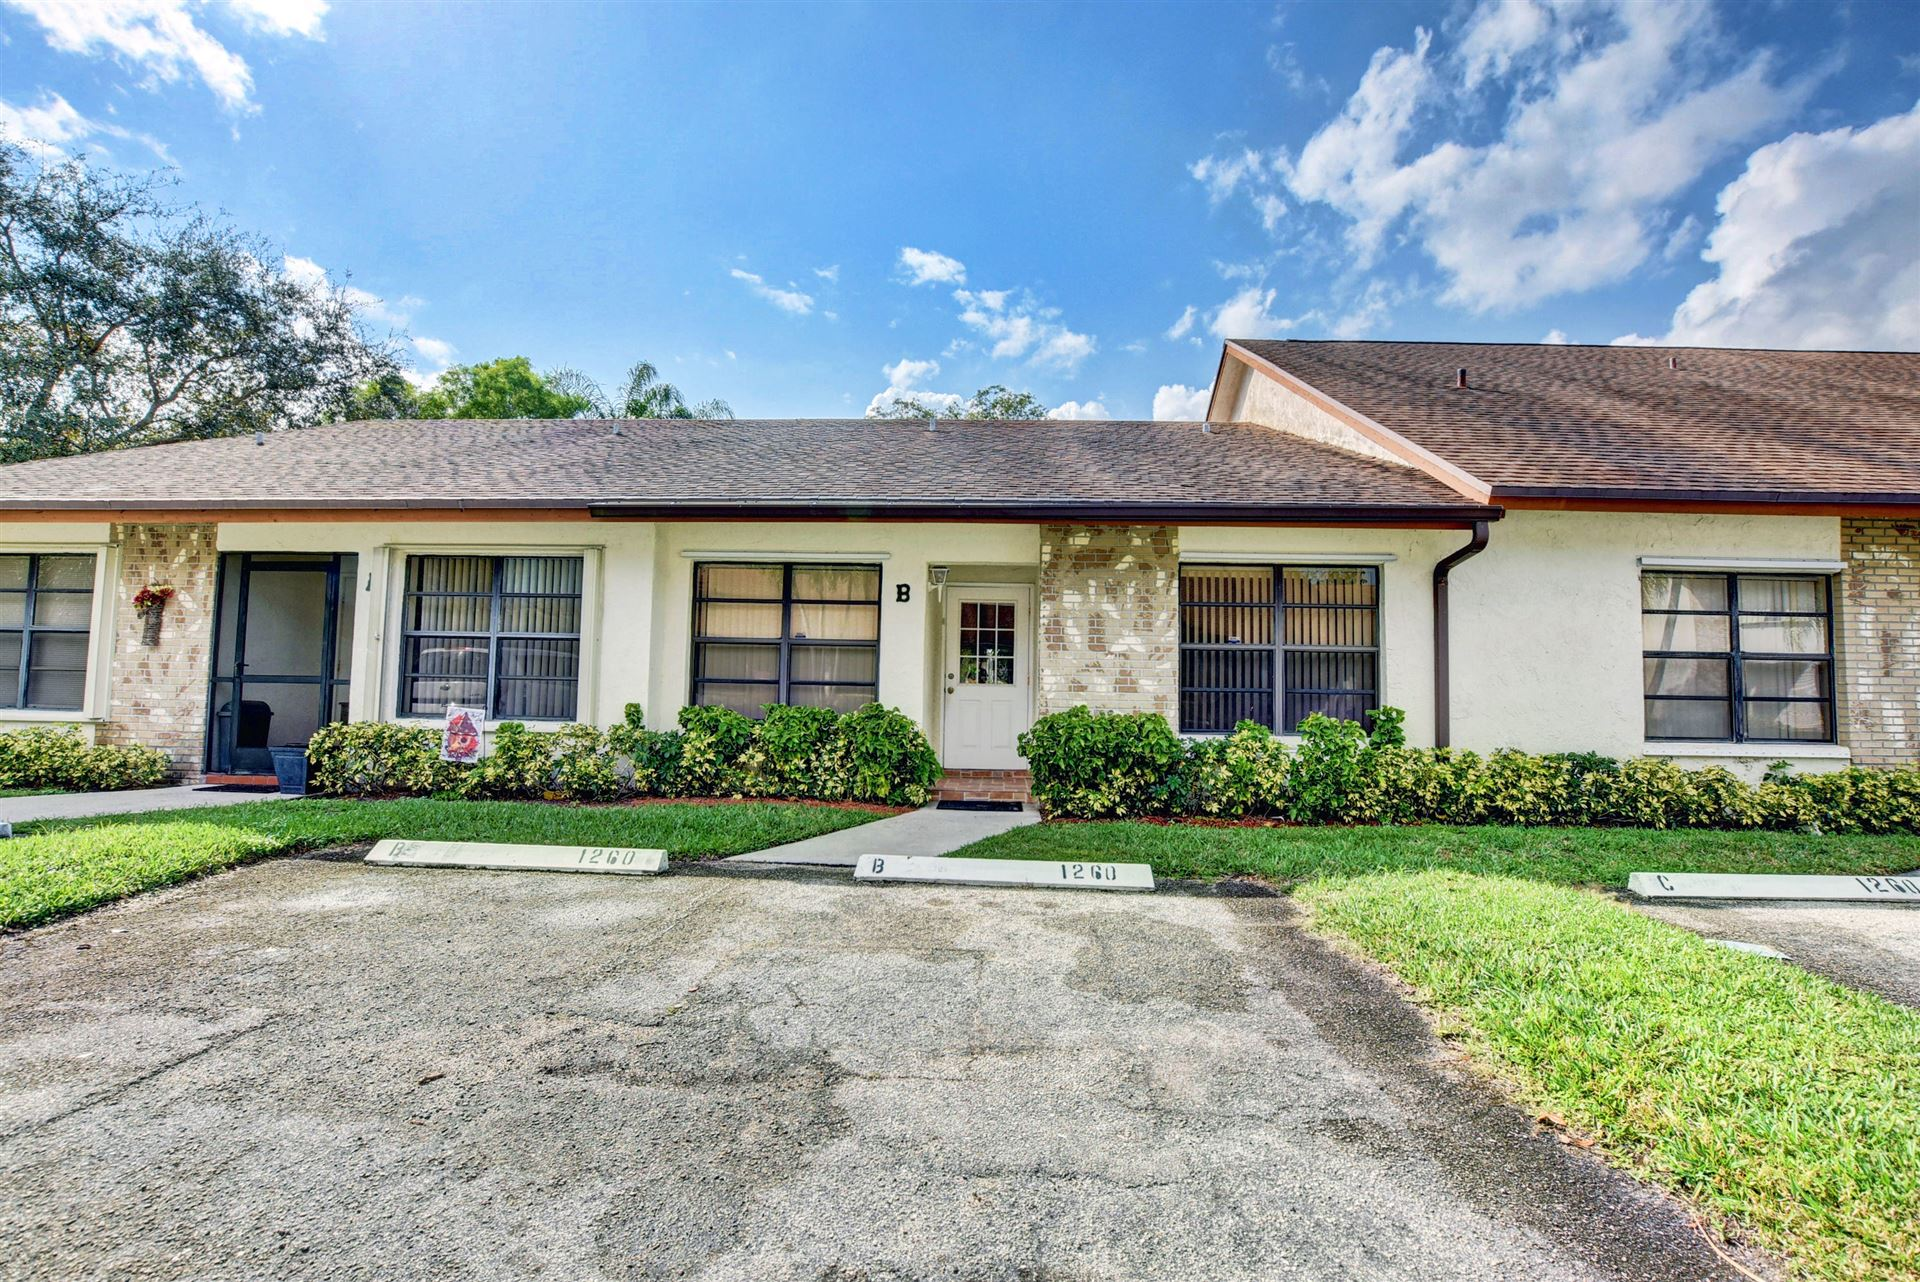 Photo of 1260 Parkside Green Drive #B, West Palm Beach, FL 33415 (MLS # RX-10693492)